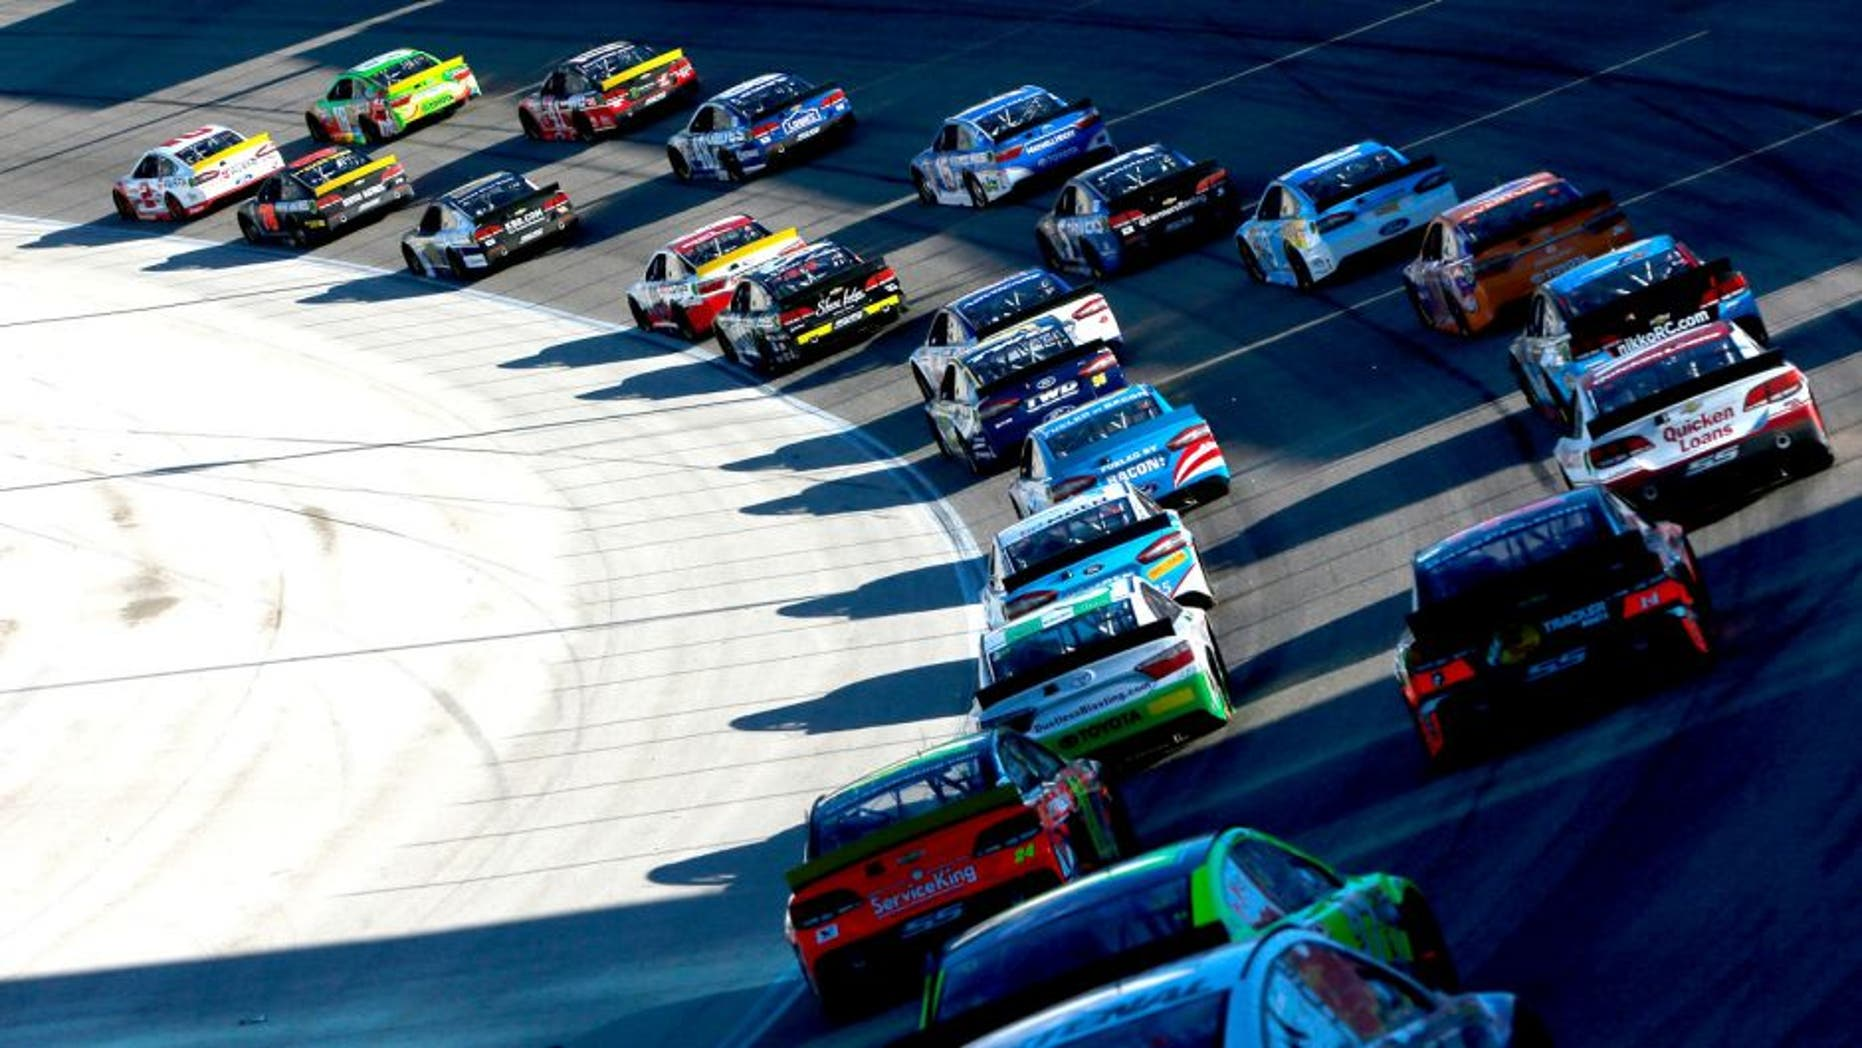 Results: The AAA Texas 500 Sprint Cup Series race at Texas Motor Speedway